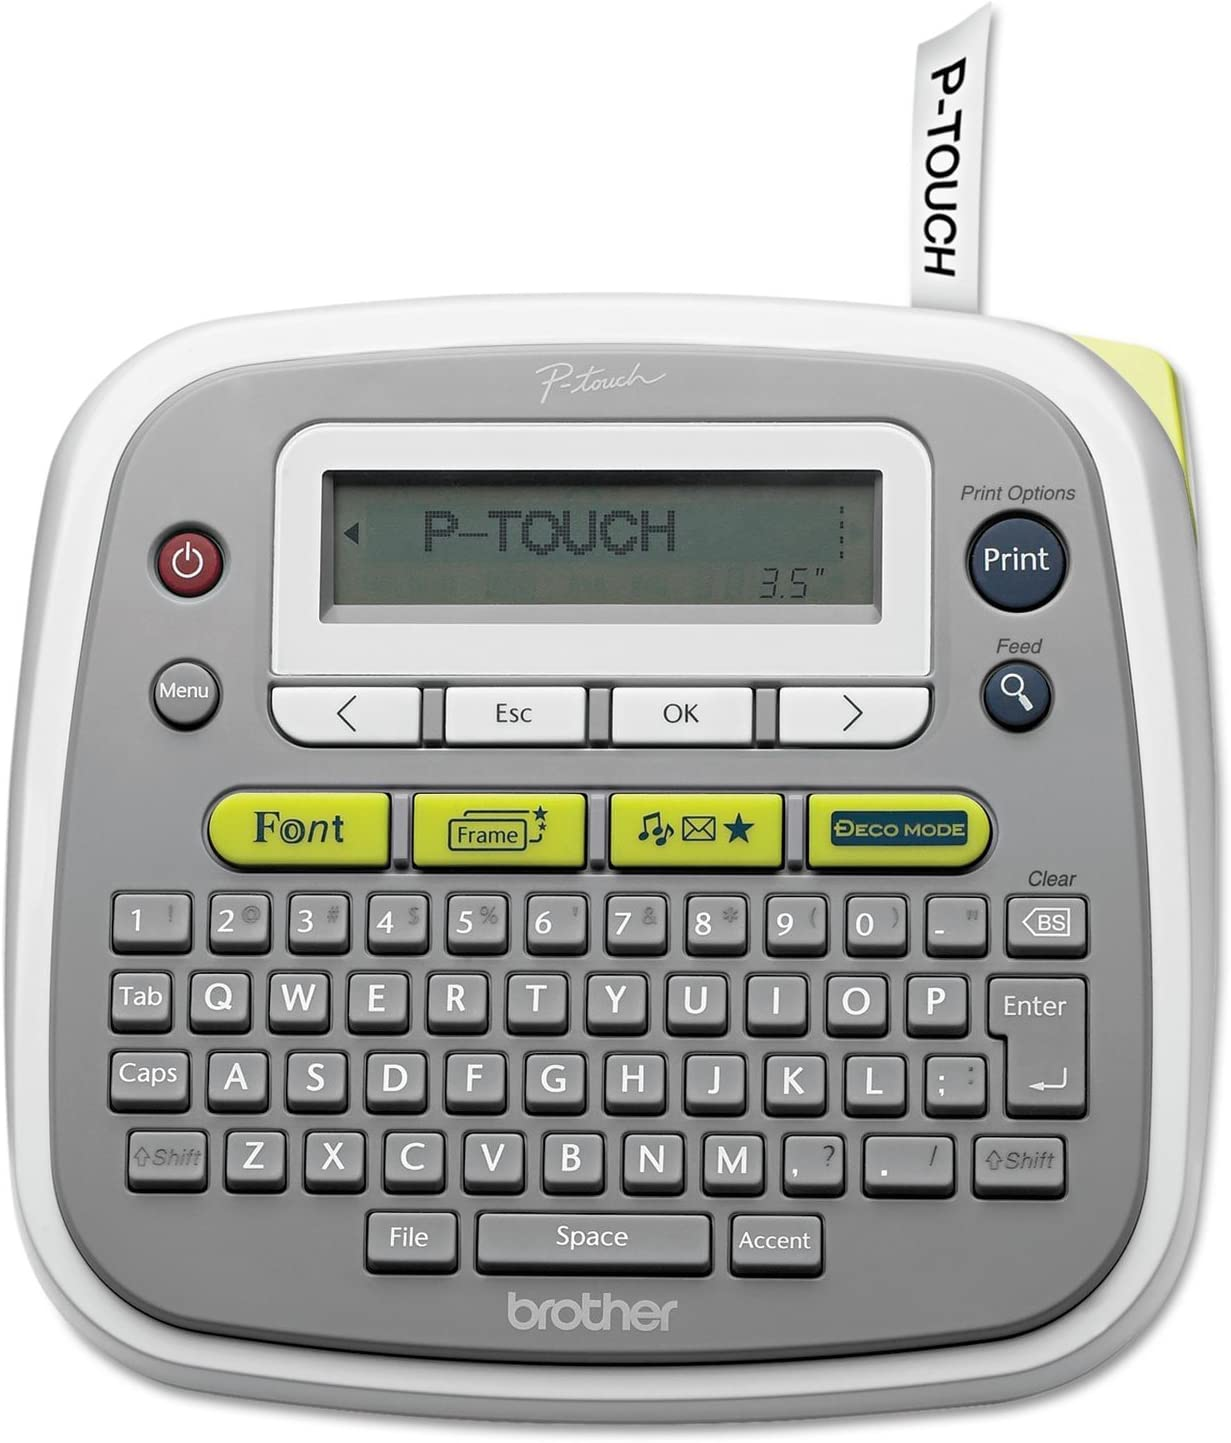 Brother P-touch Home and Office Labeler (PT-D200)